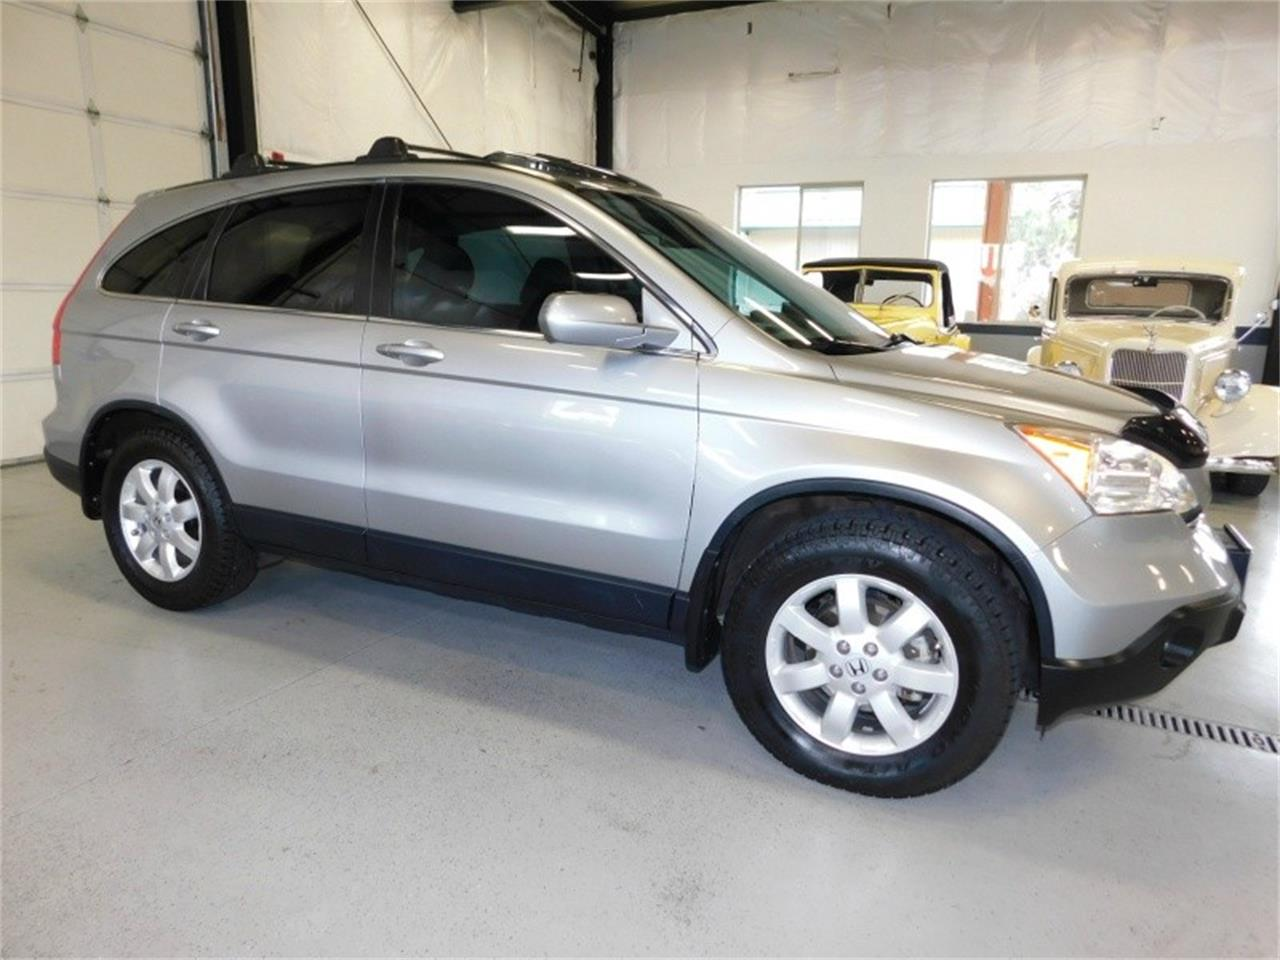 Large Picture of '08 CRV located in Oregon - $12,495.00 Offered by Bend Park And Sell - QPWW